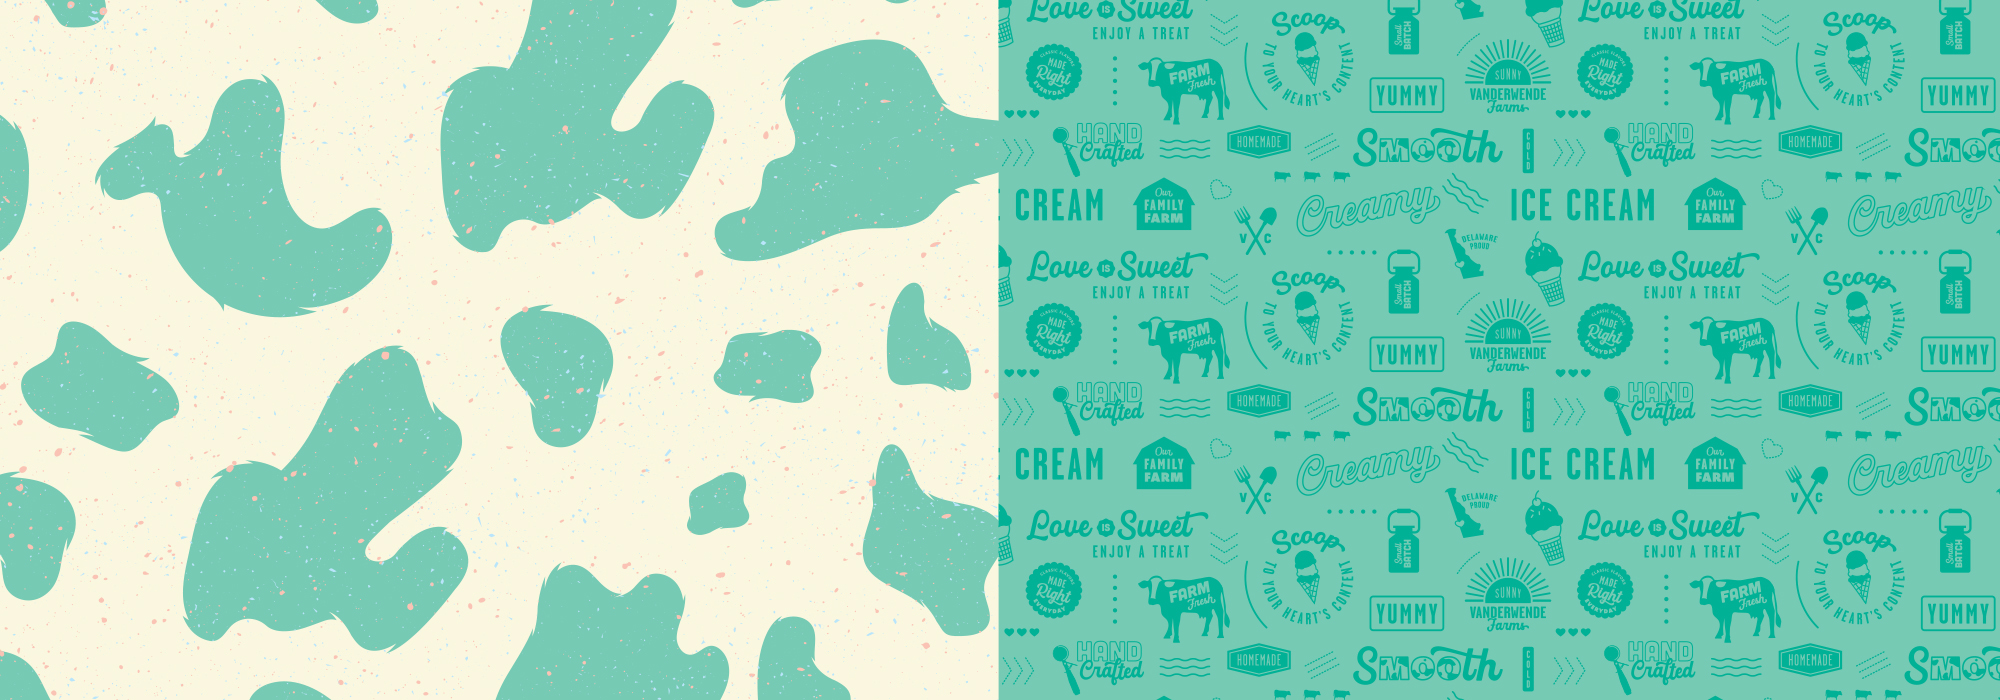 Vanderwende Farm Creamery Brand Elements Refresh